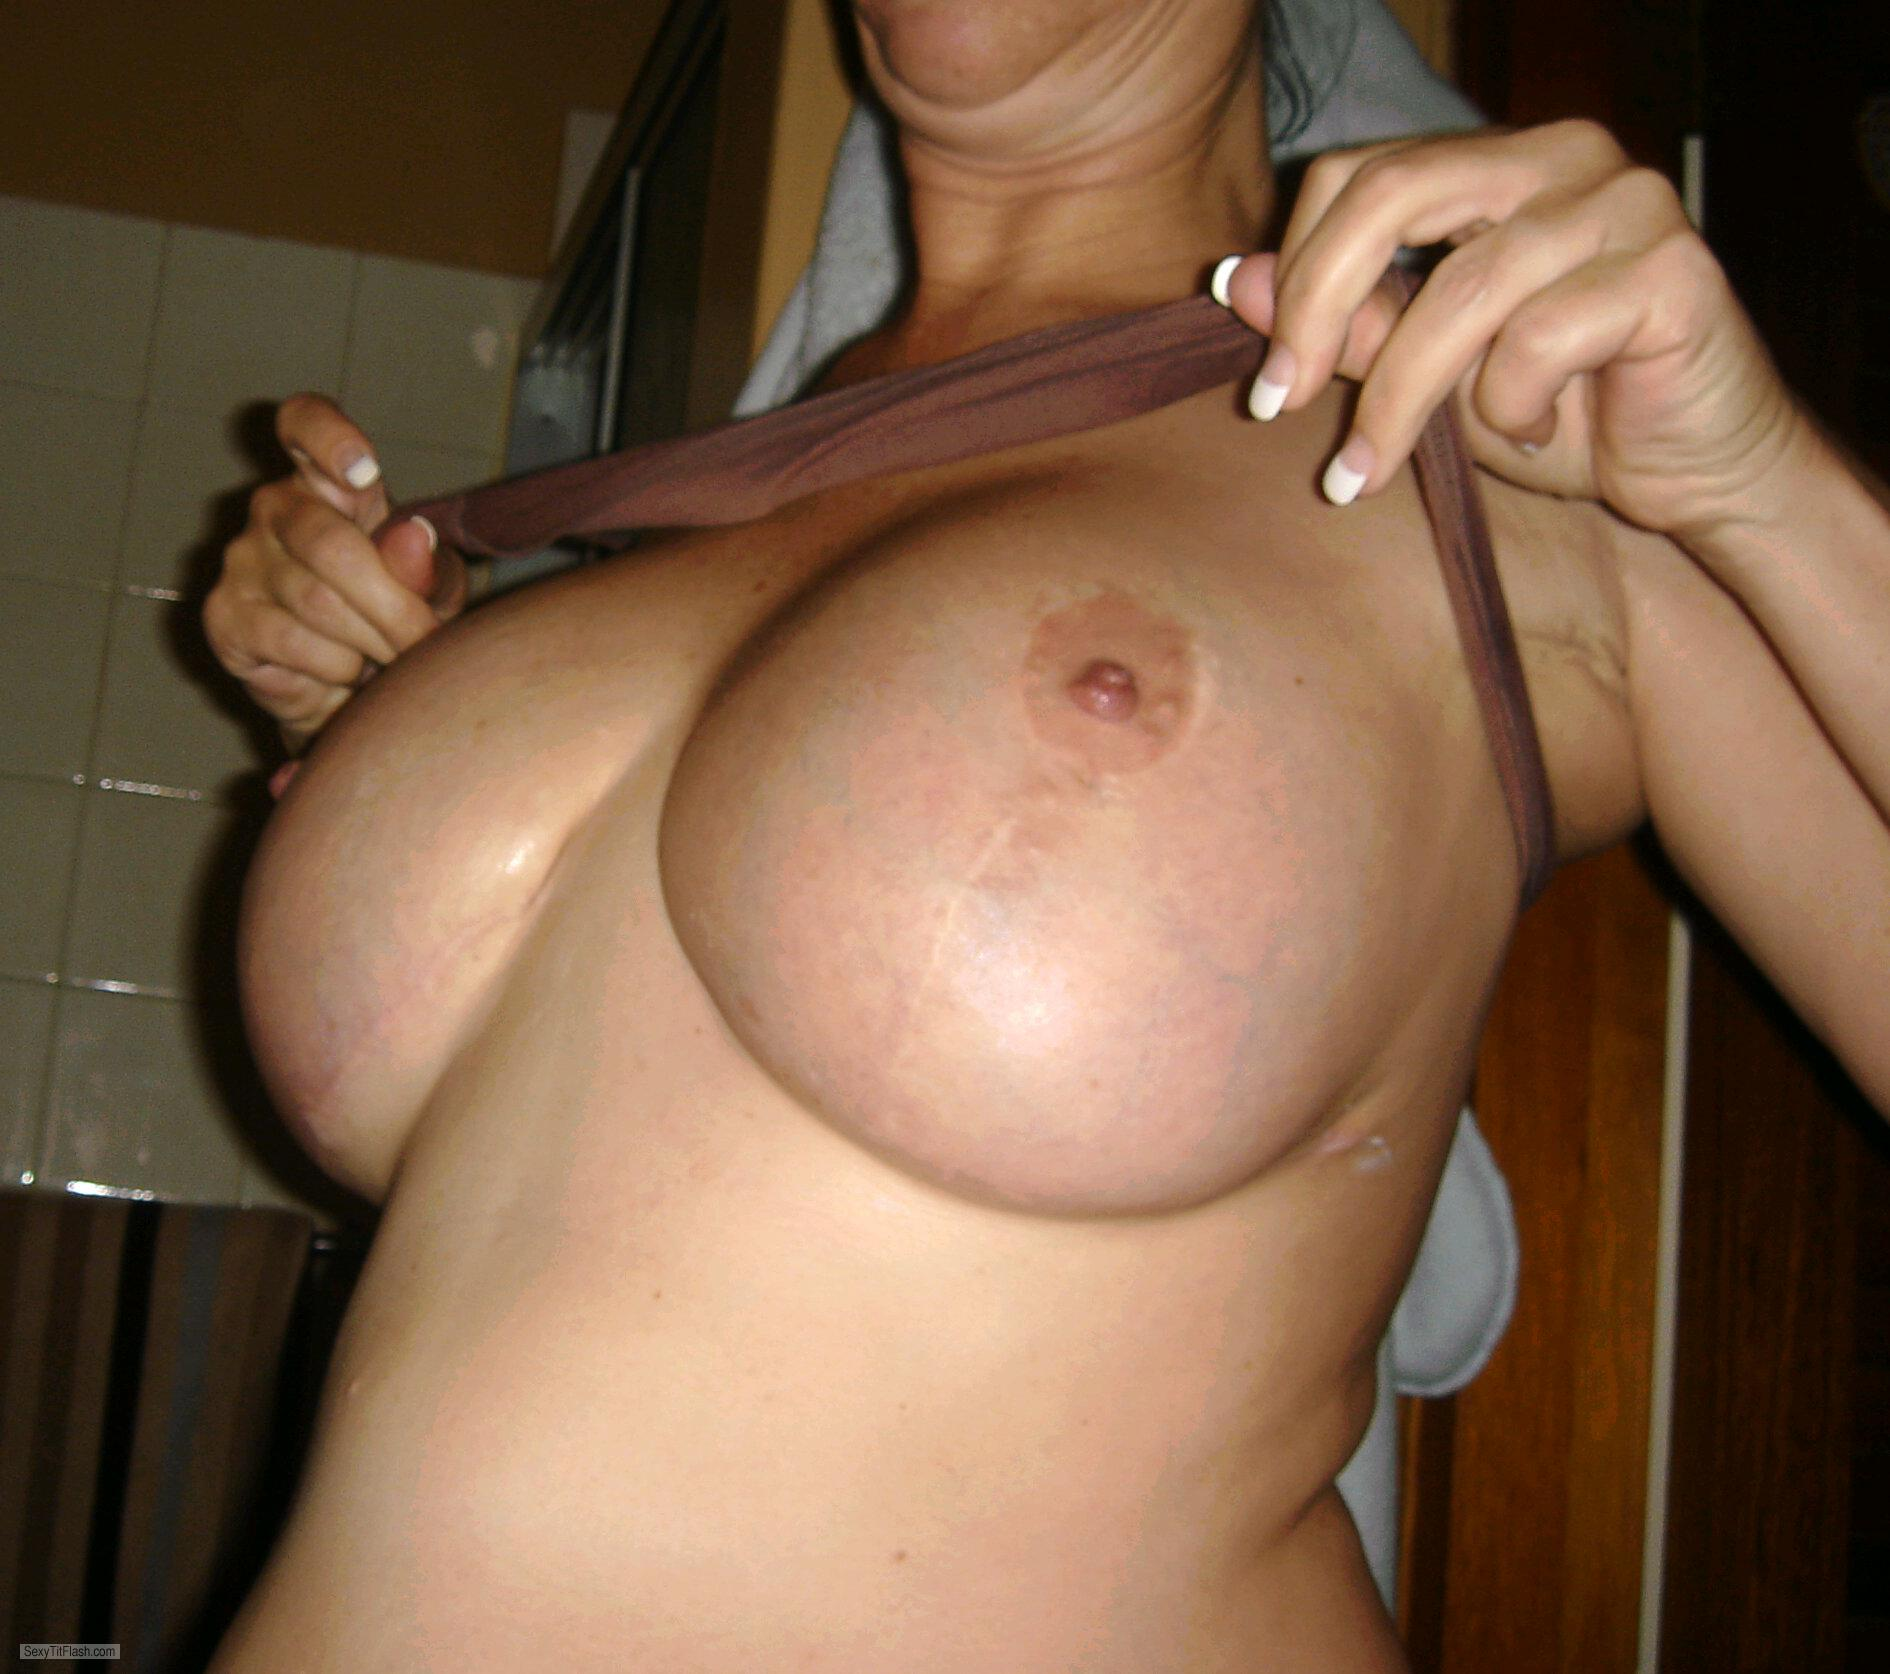 Big Tits Of My Wife Dasaaxxx